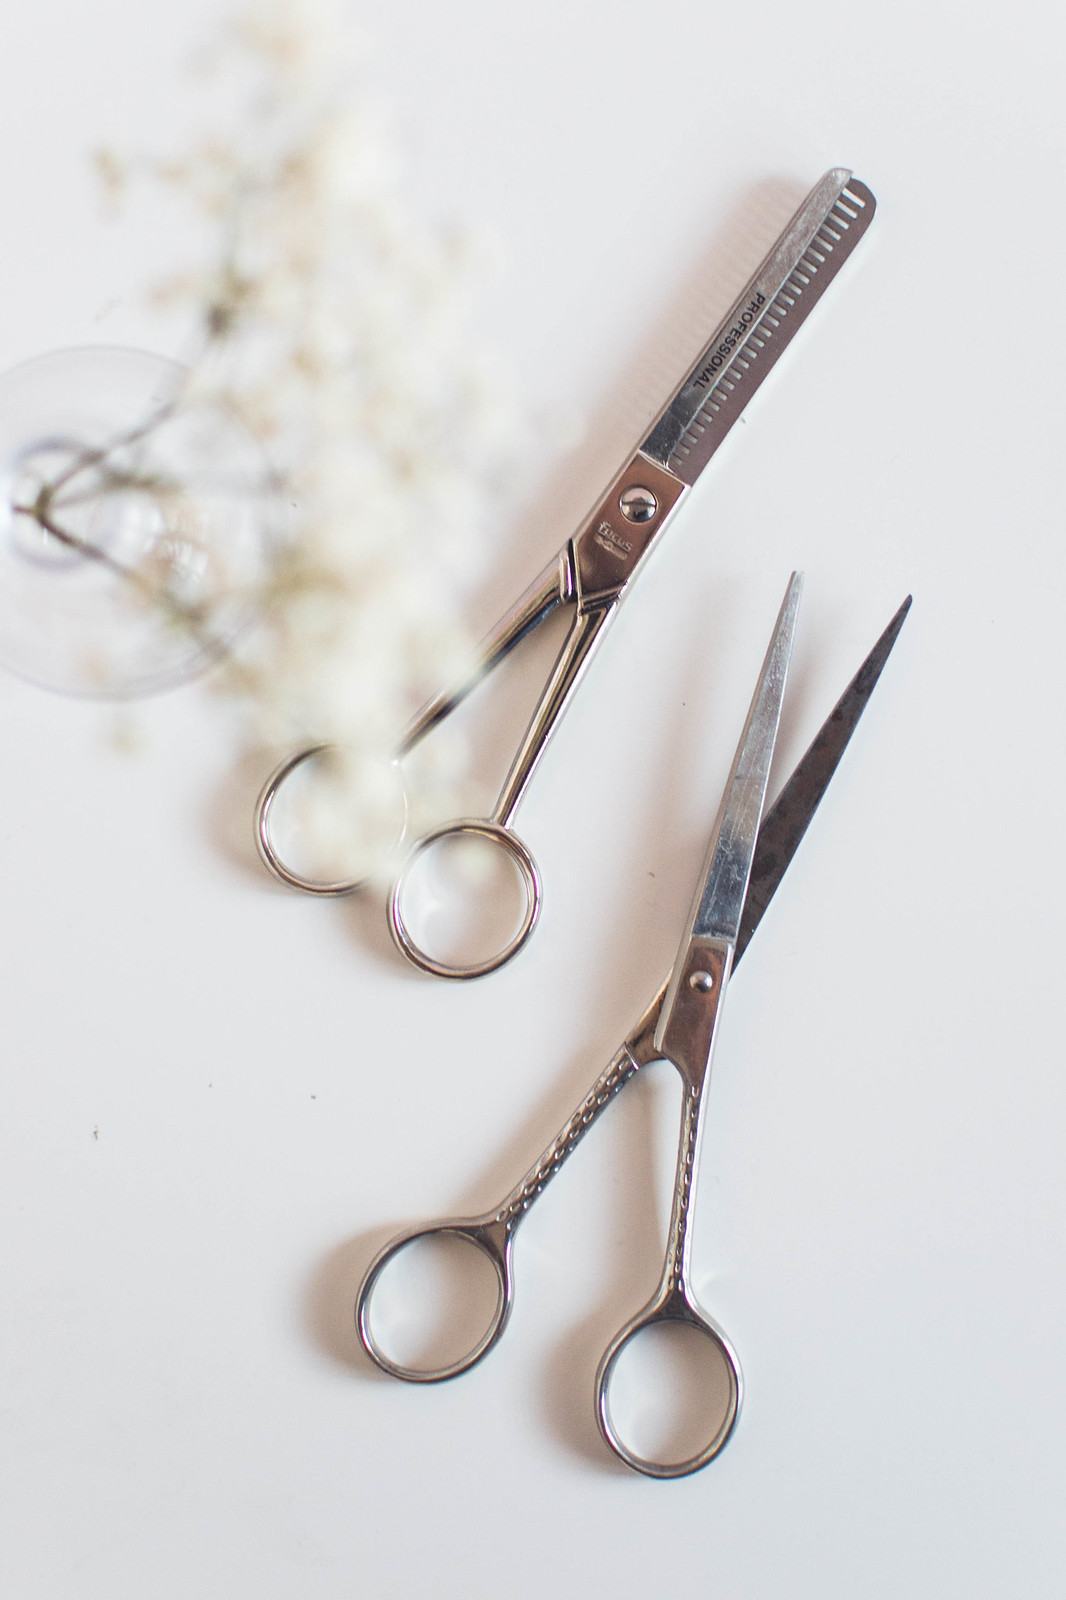 Learn how to touch up and maintain your haircut, nails, feet after your beauty treatment - Budget Friendly Pampering Guide